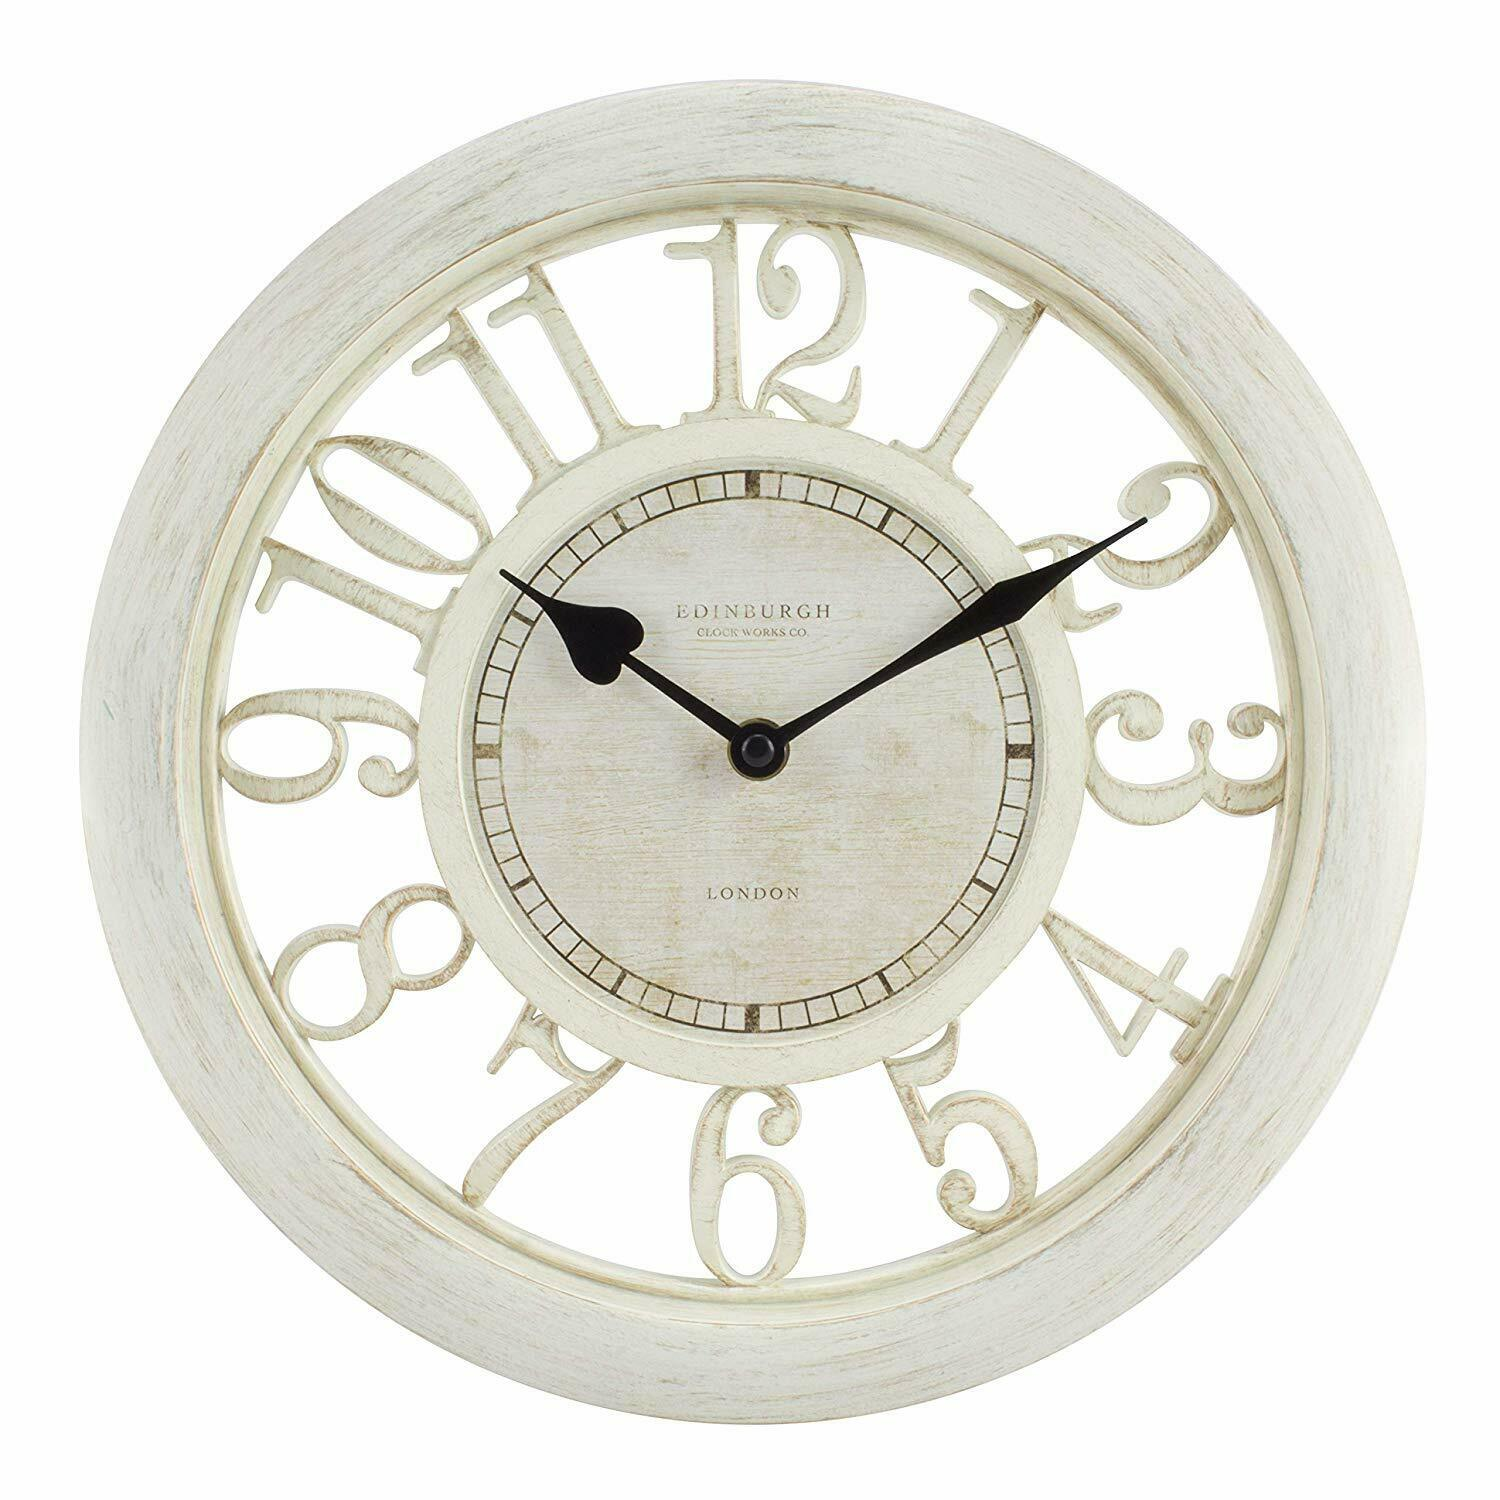 Coravelle Bettwäsche Domed Glass Wall Clock White Face Quartz Mayfair & Co 30cm Gift F&f